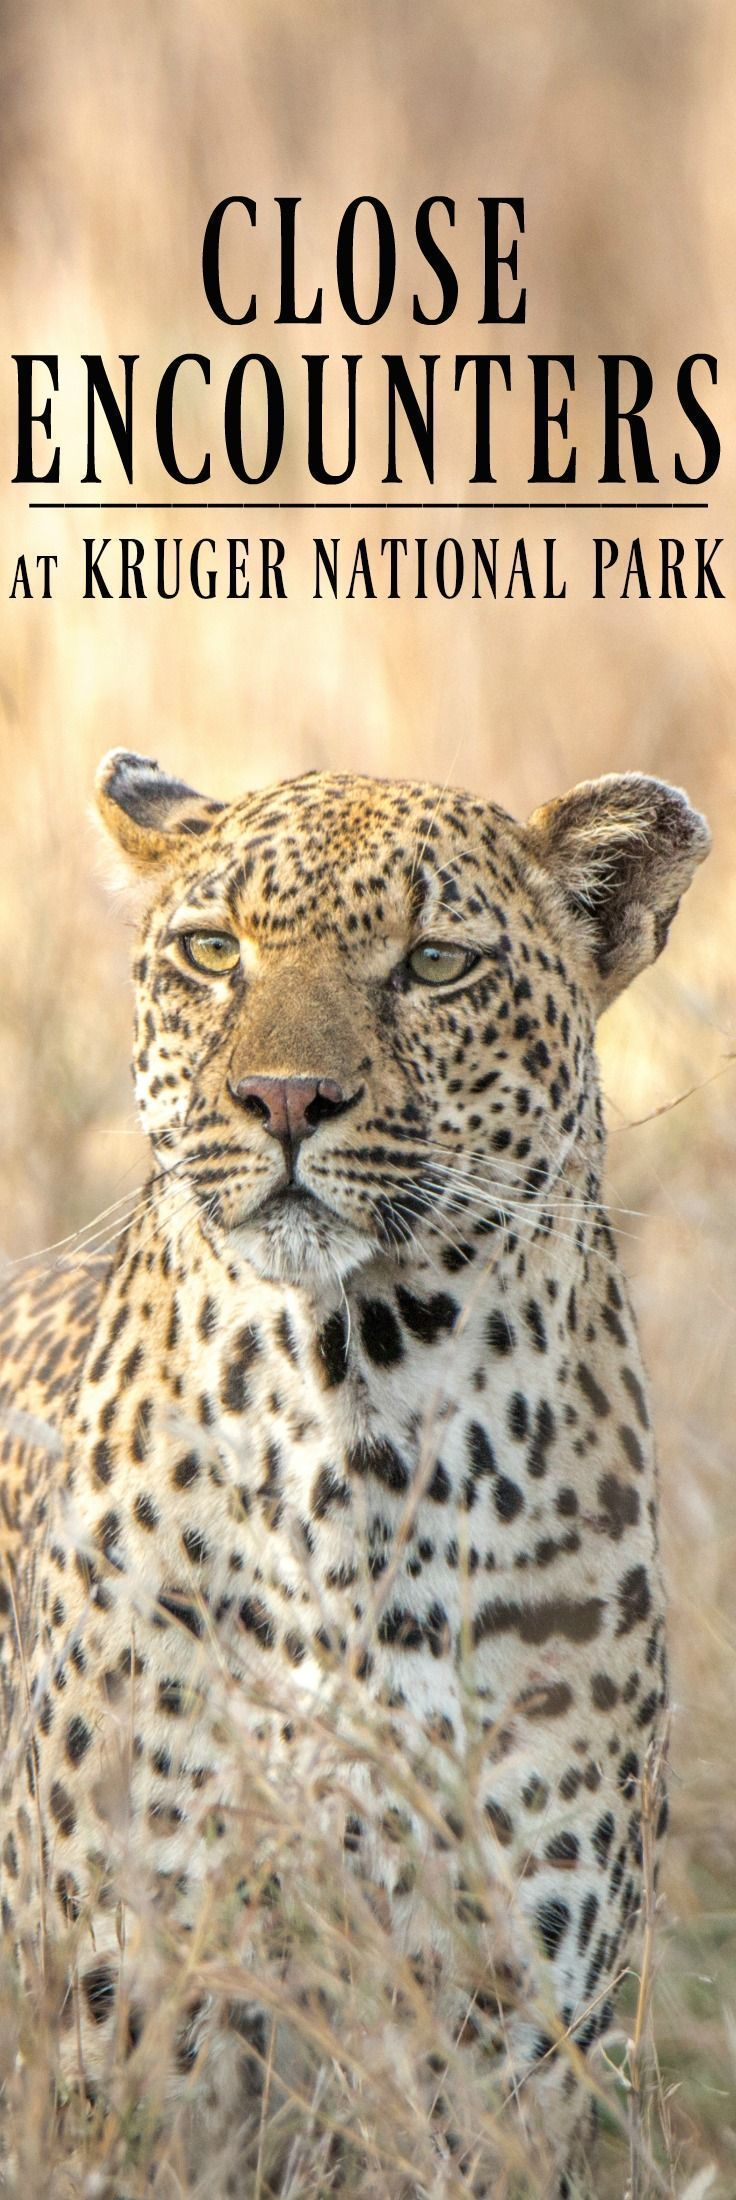 Close encounters: How to see the big 5 at Kruger National Park. For those in need of a serious Africa Safari wildlife fix, look no further than Kruger National Park, South Africa. Here are 2 ways to see the big 5: a boutique safari or a private game reser